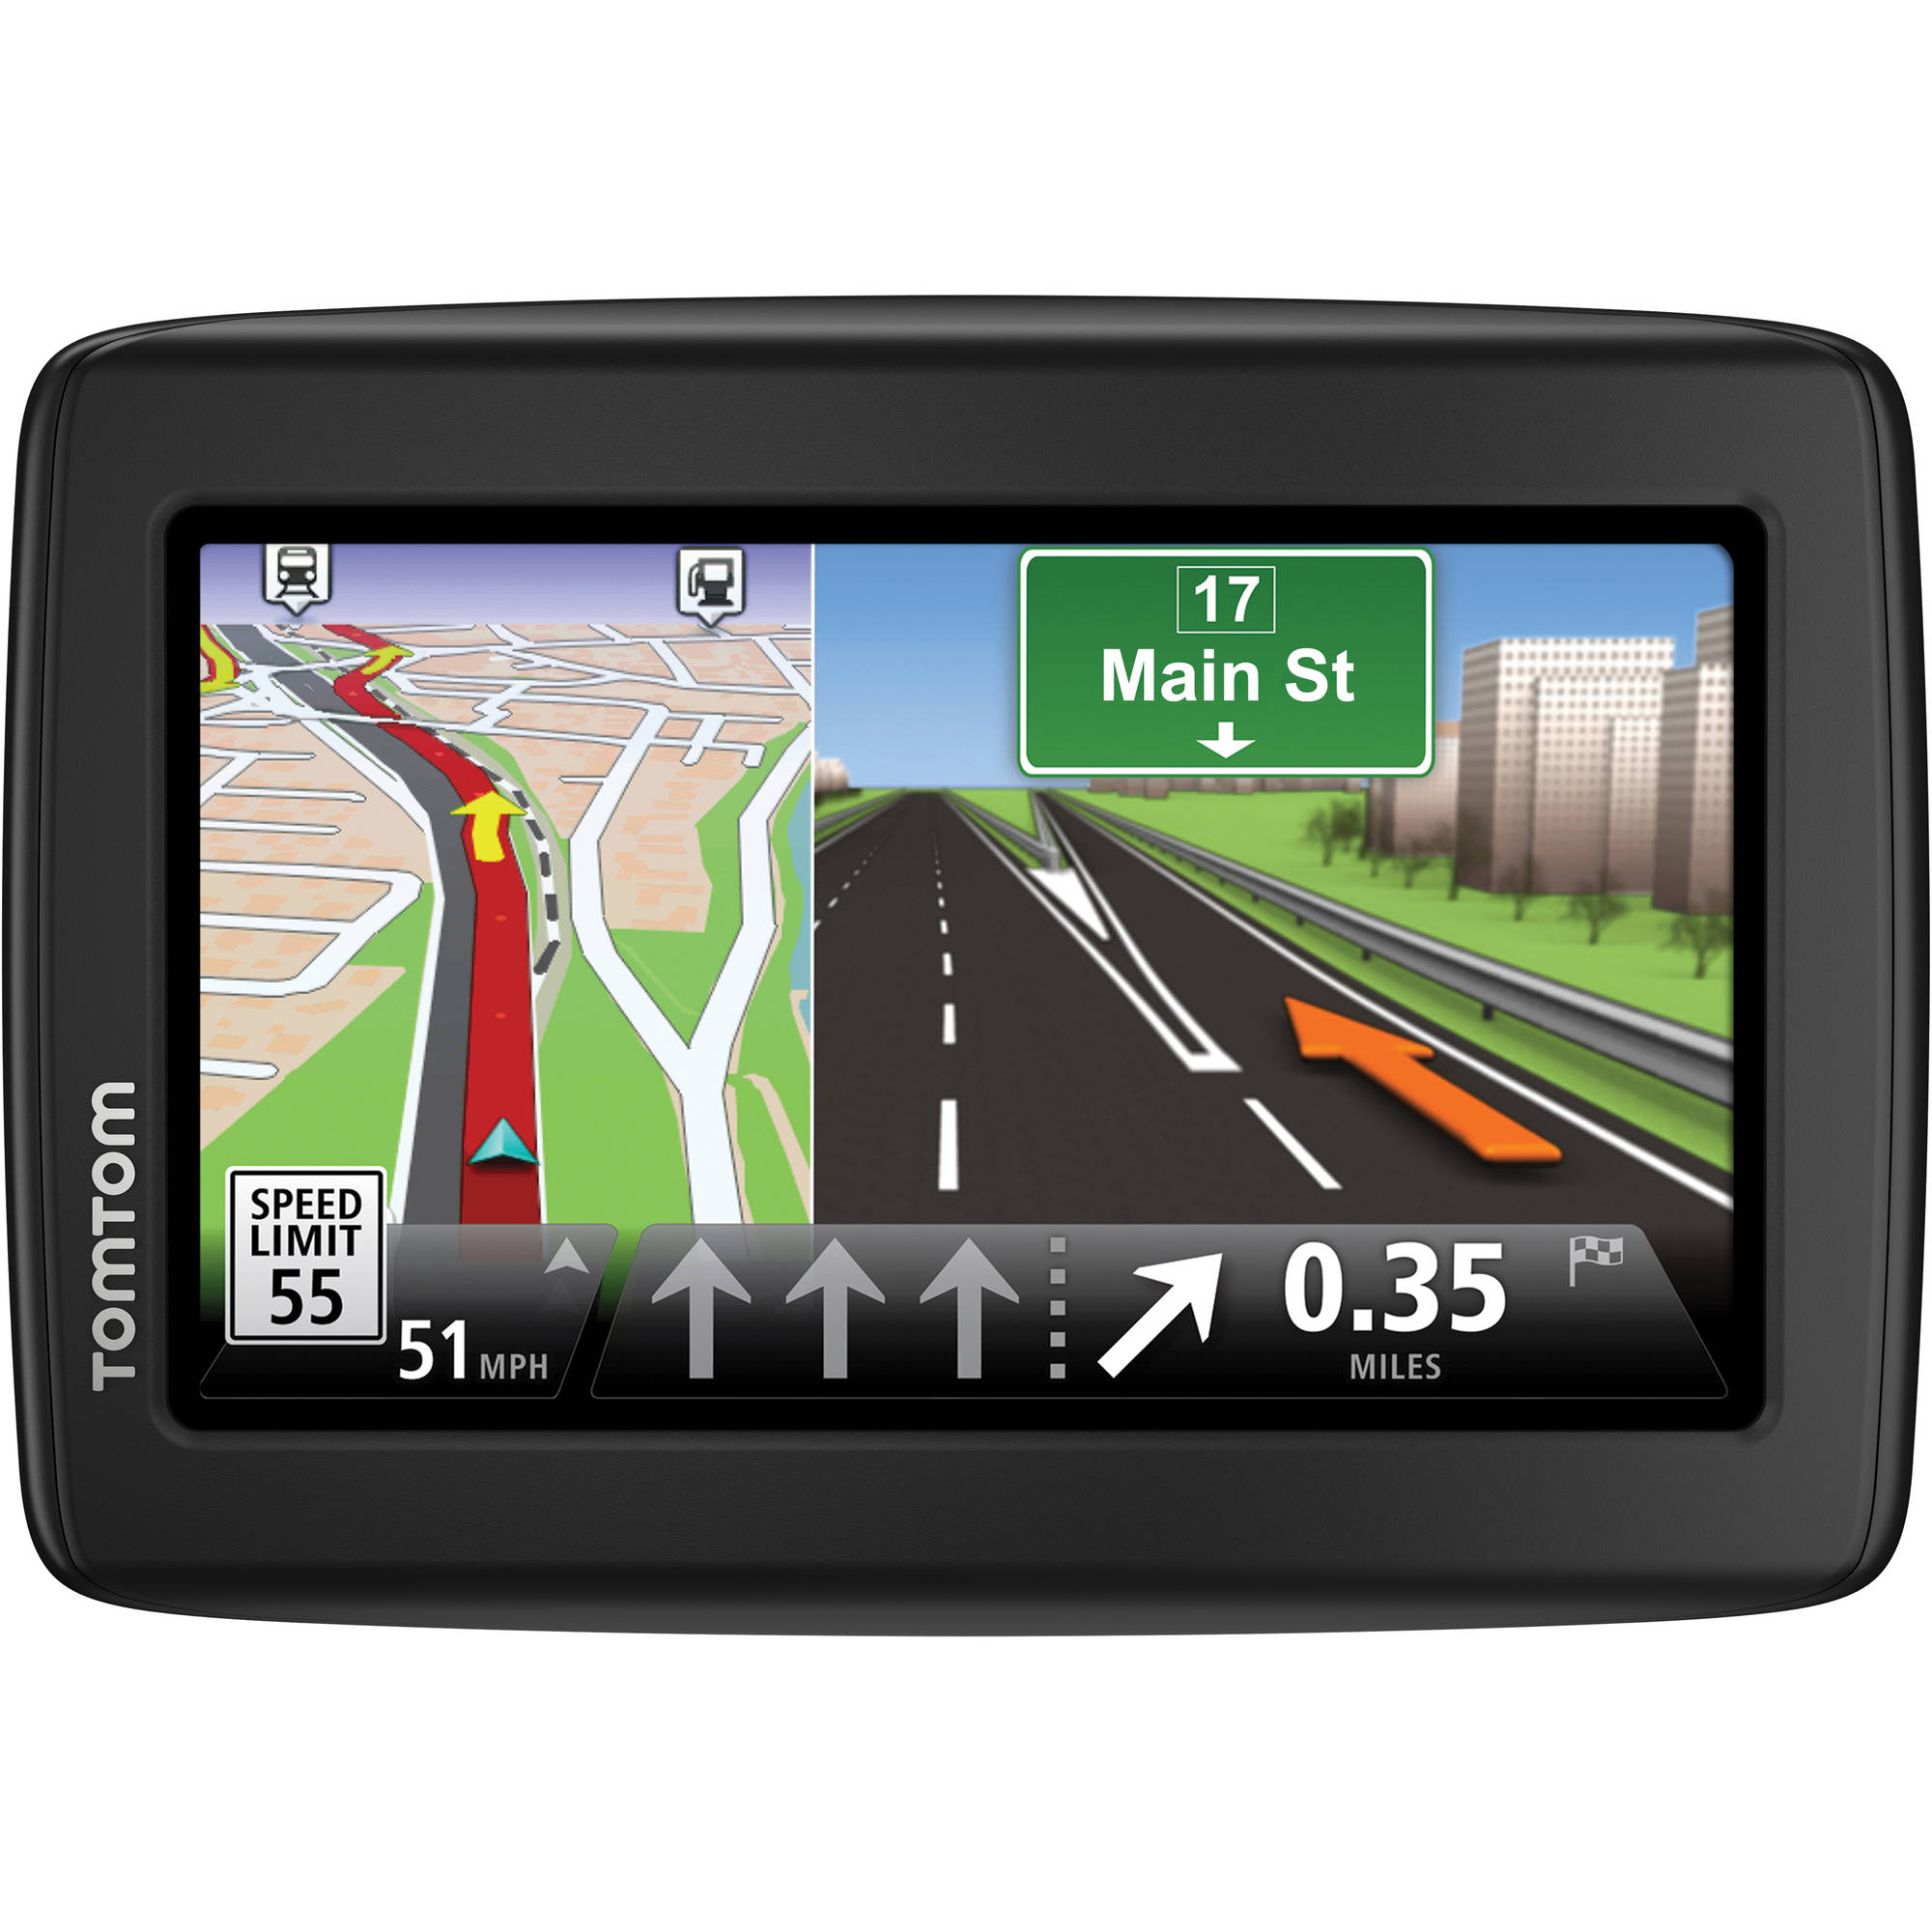 TomTom VIA 1515TM GPS Device with Lifetime Maps and Traffic